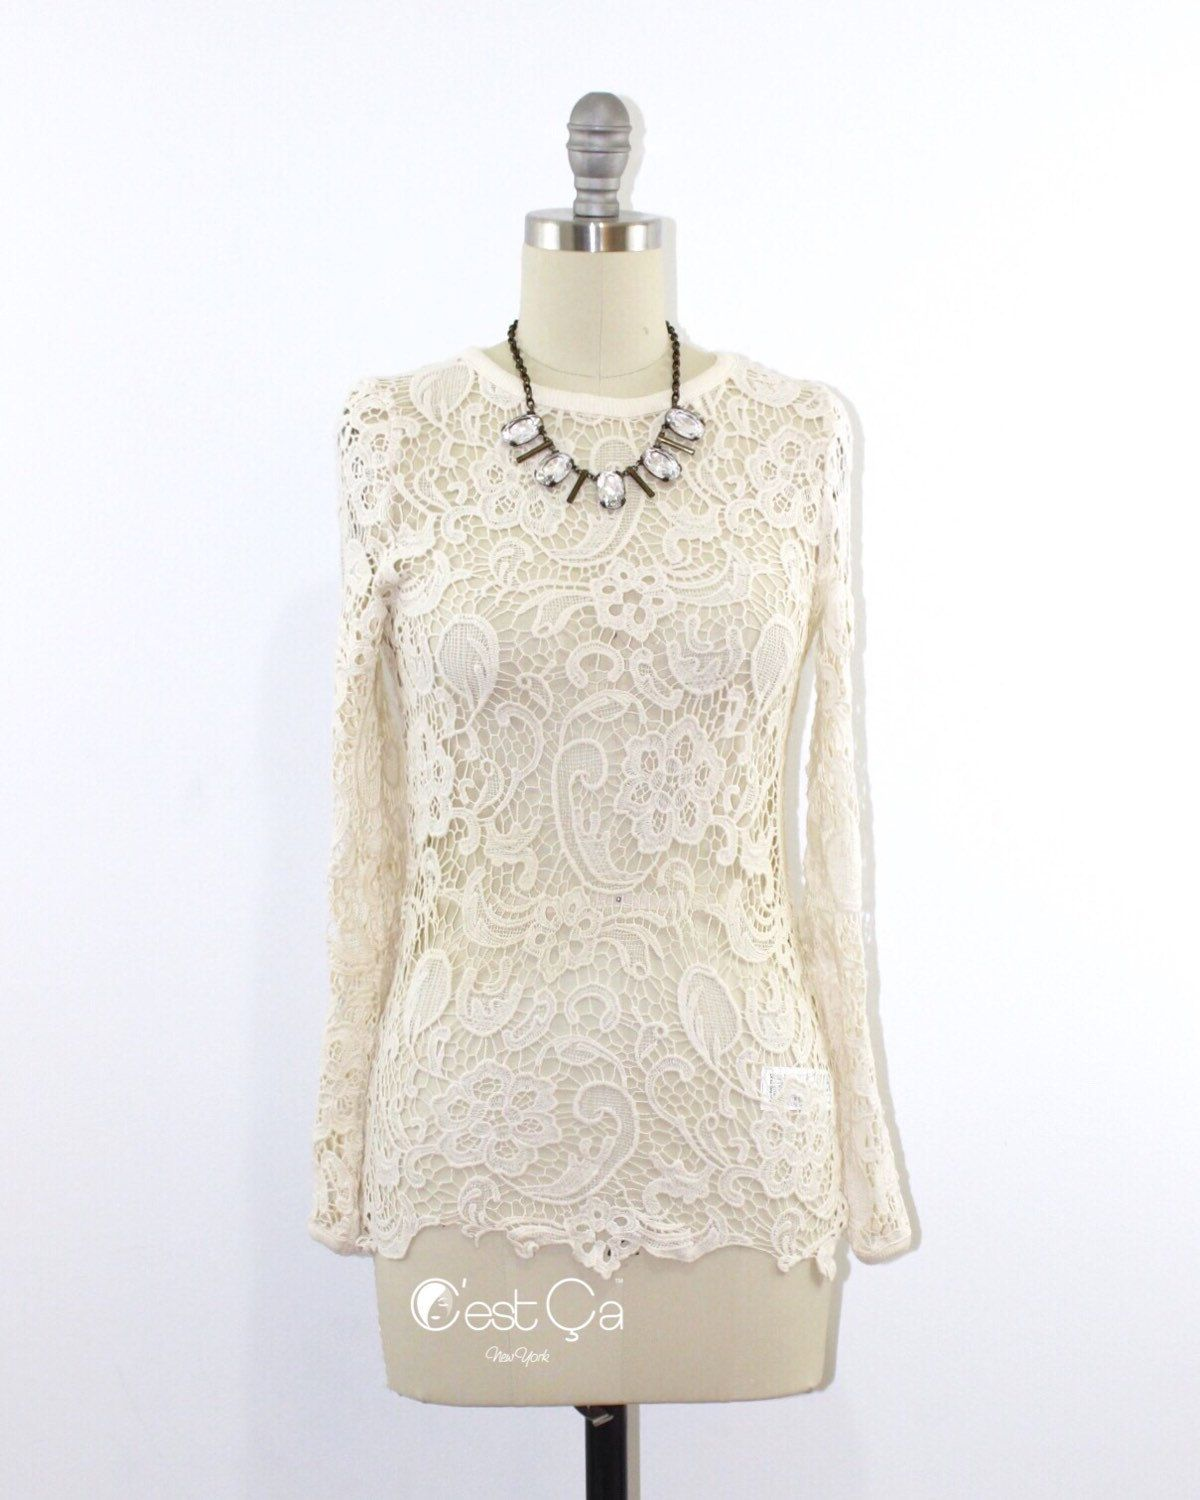 Sonia - Guipure Lace Fitted Shirt in Ivory, Vintage Inspired Blouse, Guipure Crochet Lace Top  Classic embroidered fitted shirt to wear with skinny jeans and A-line skirt...   https://nemb.ly/p/4yH0WjDuW Happily published via Nembol